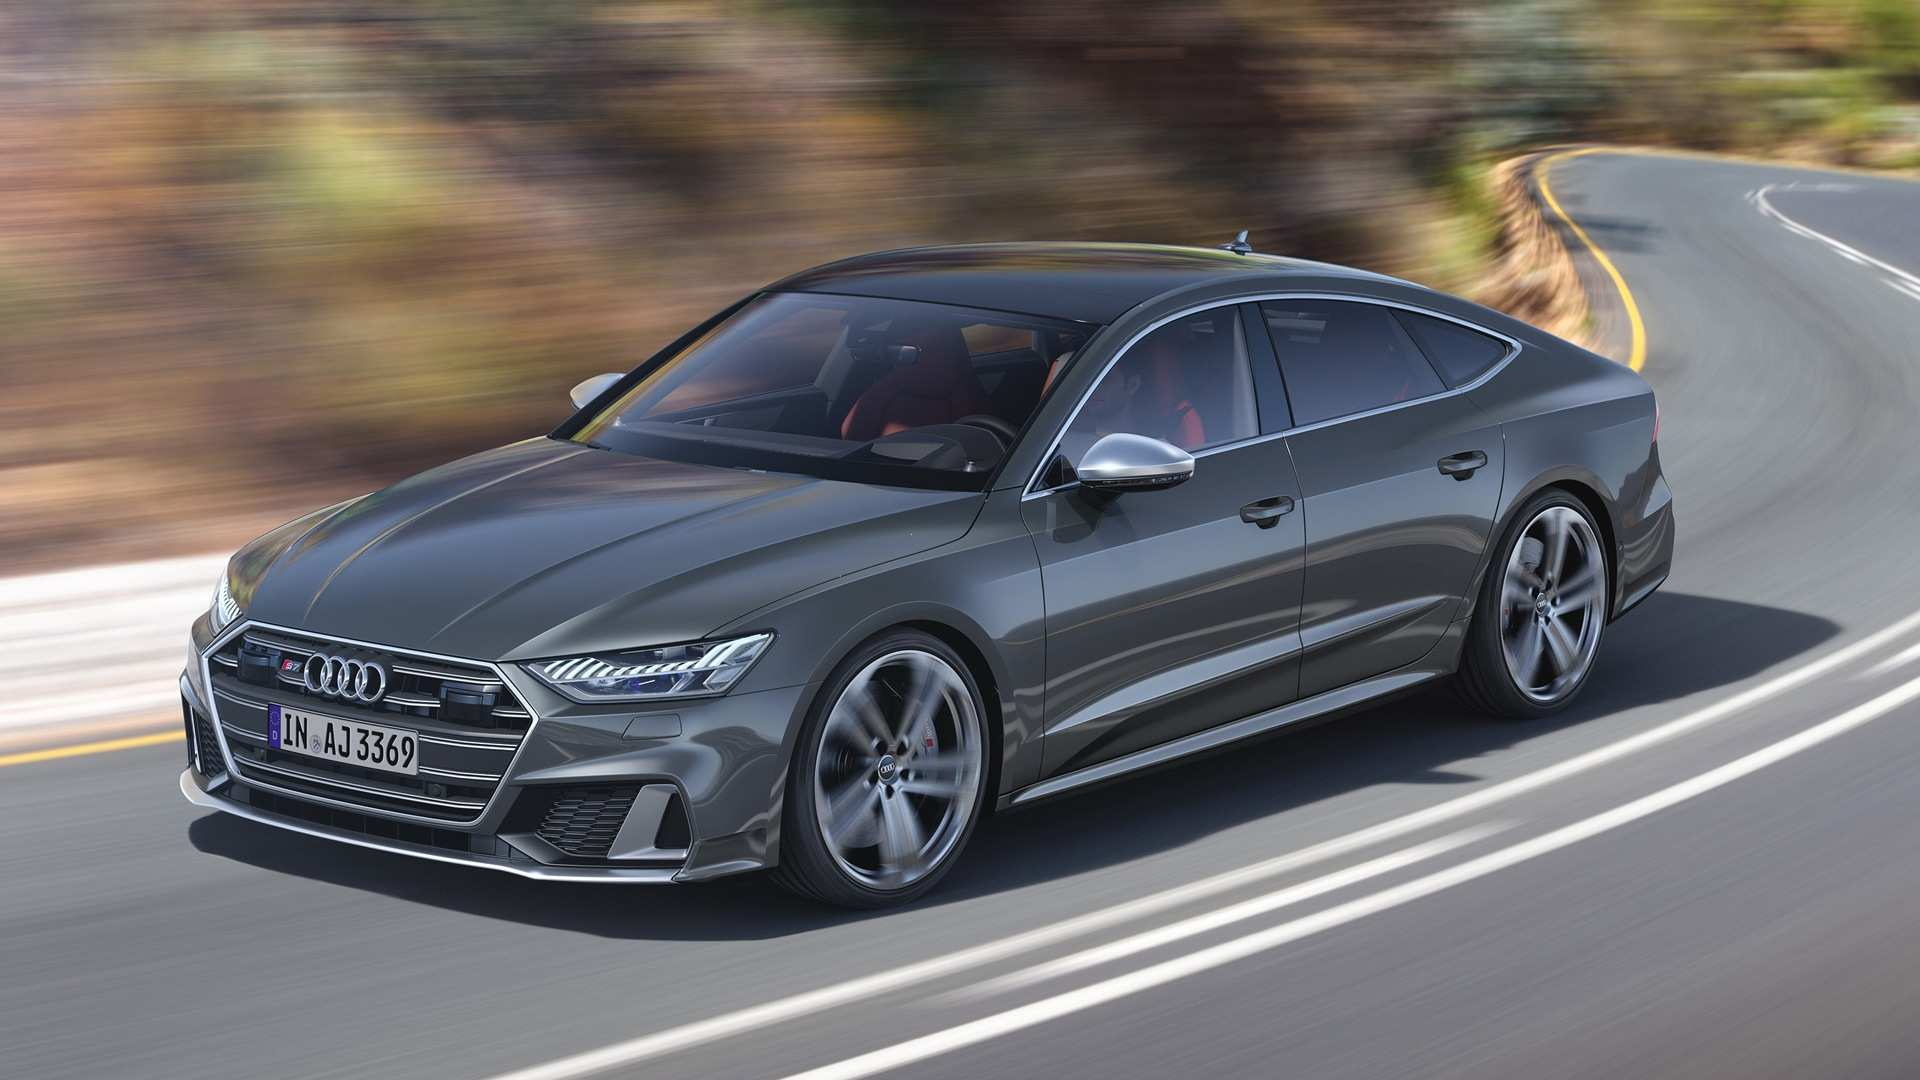 21 The Best 2020 Audi A7 Pictures